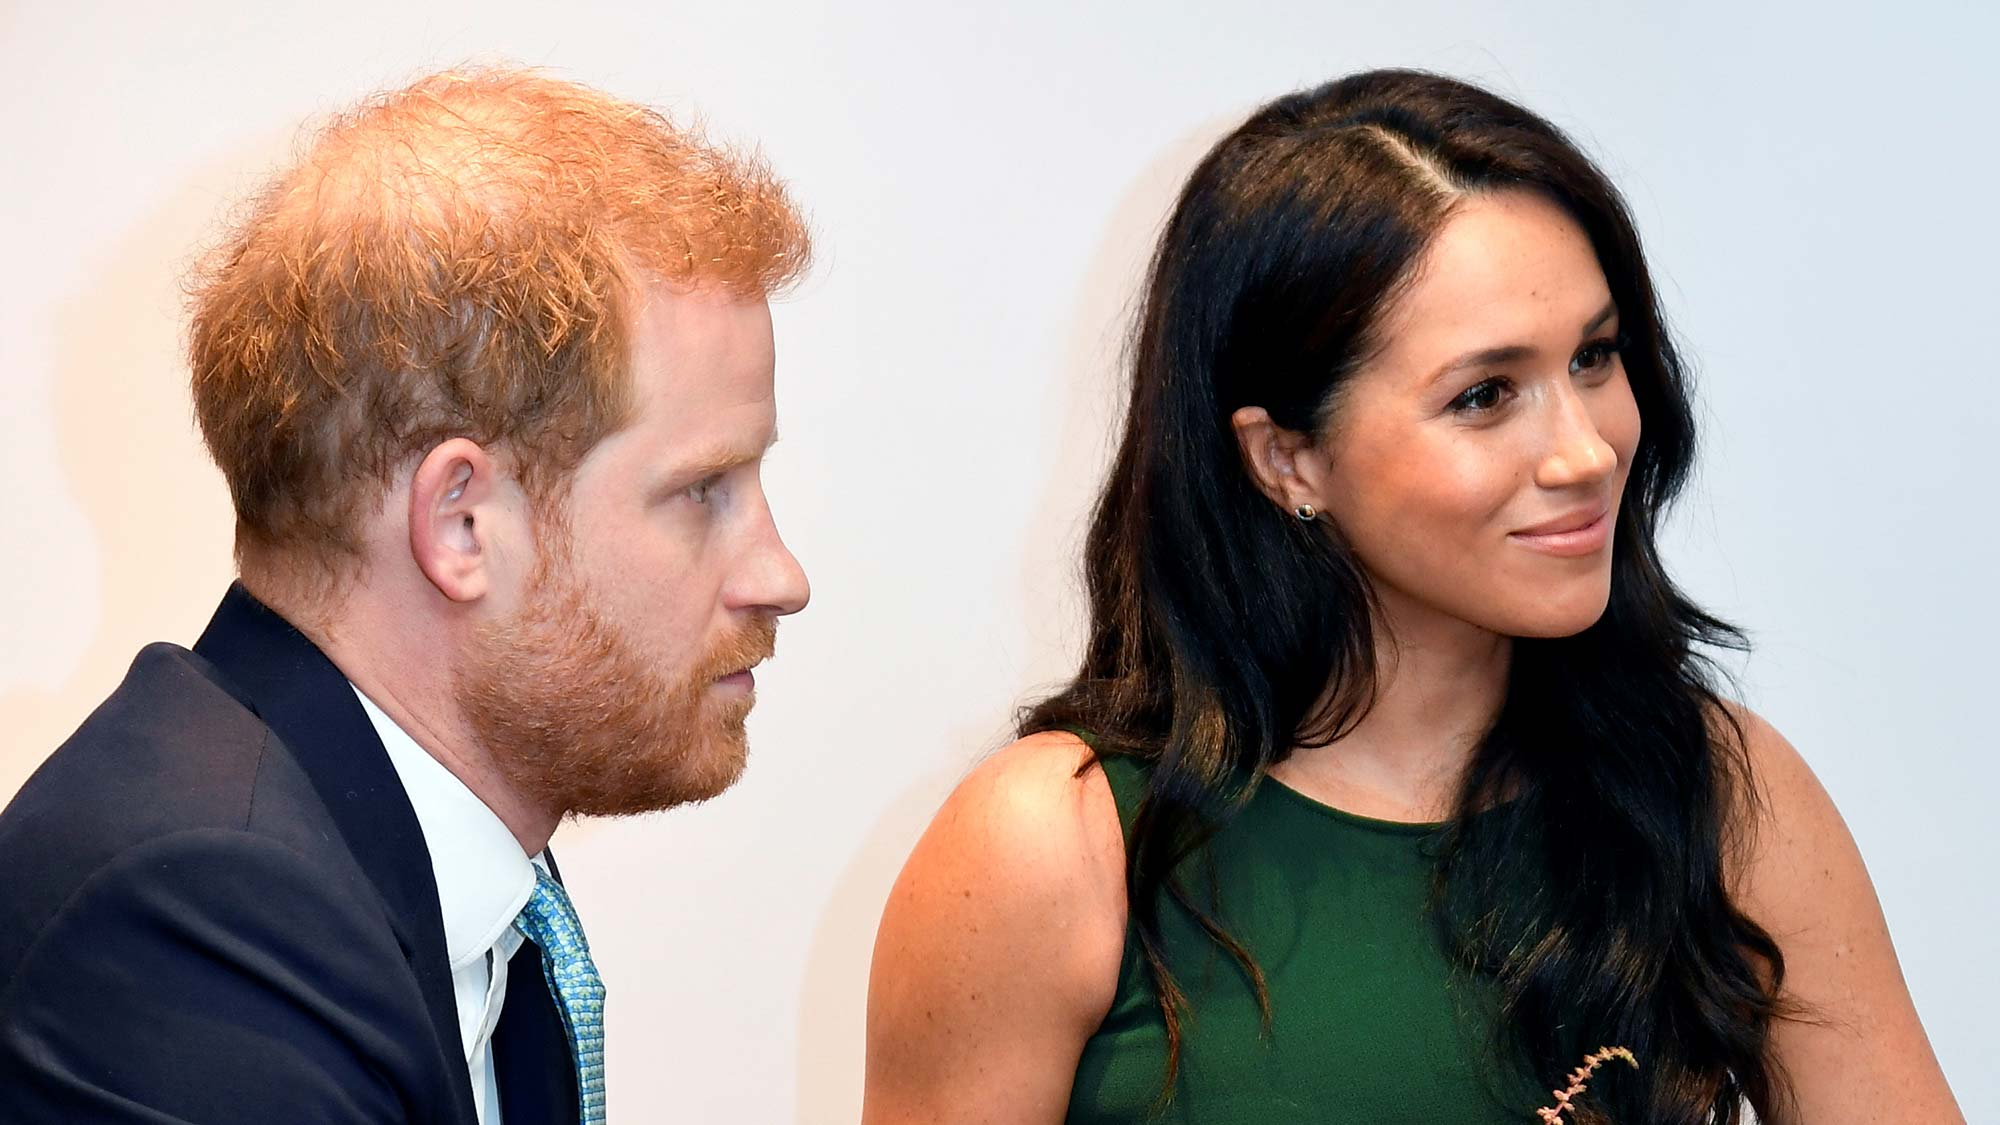 Prince Harry and Meghan Markle are taking a break from public life